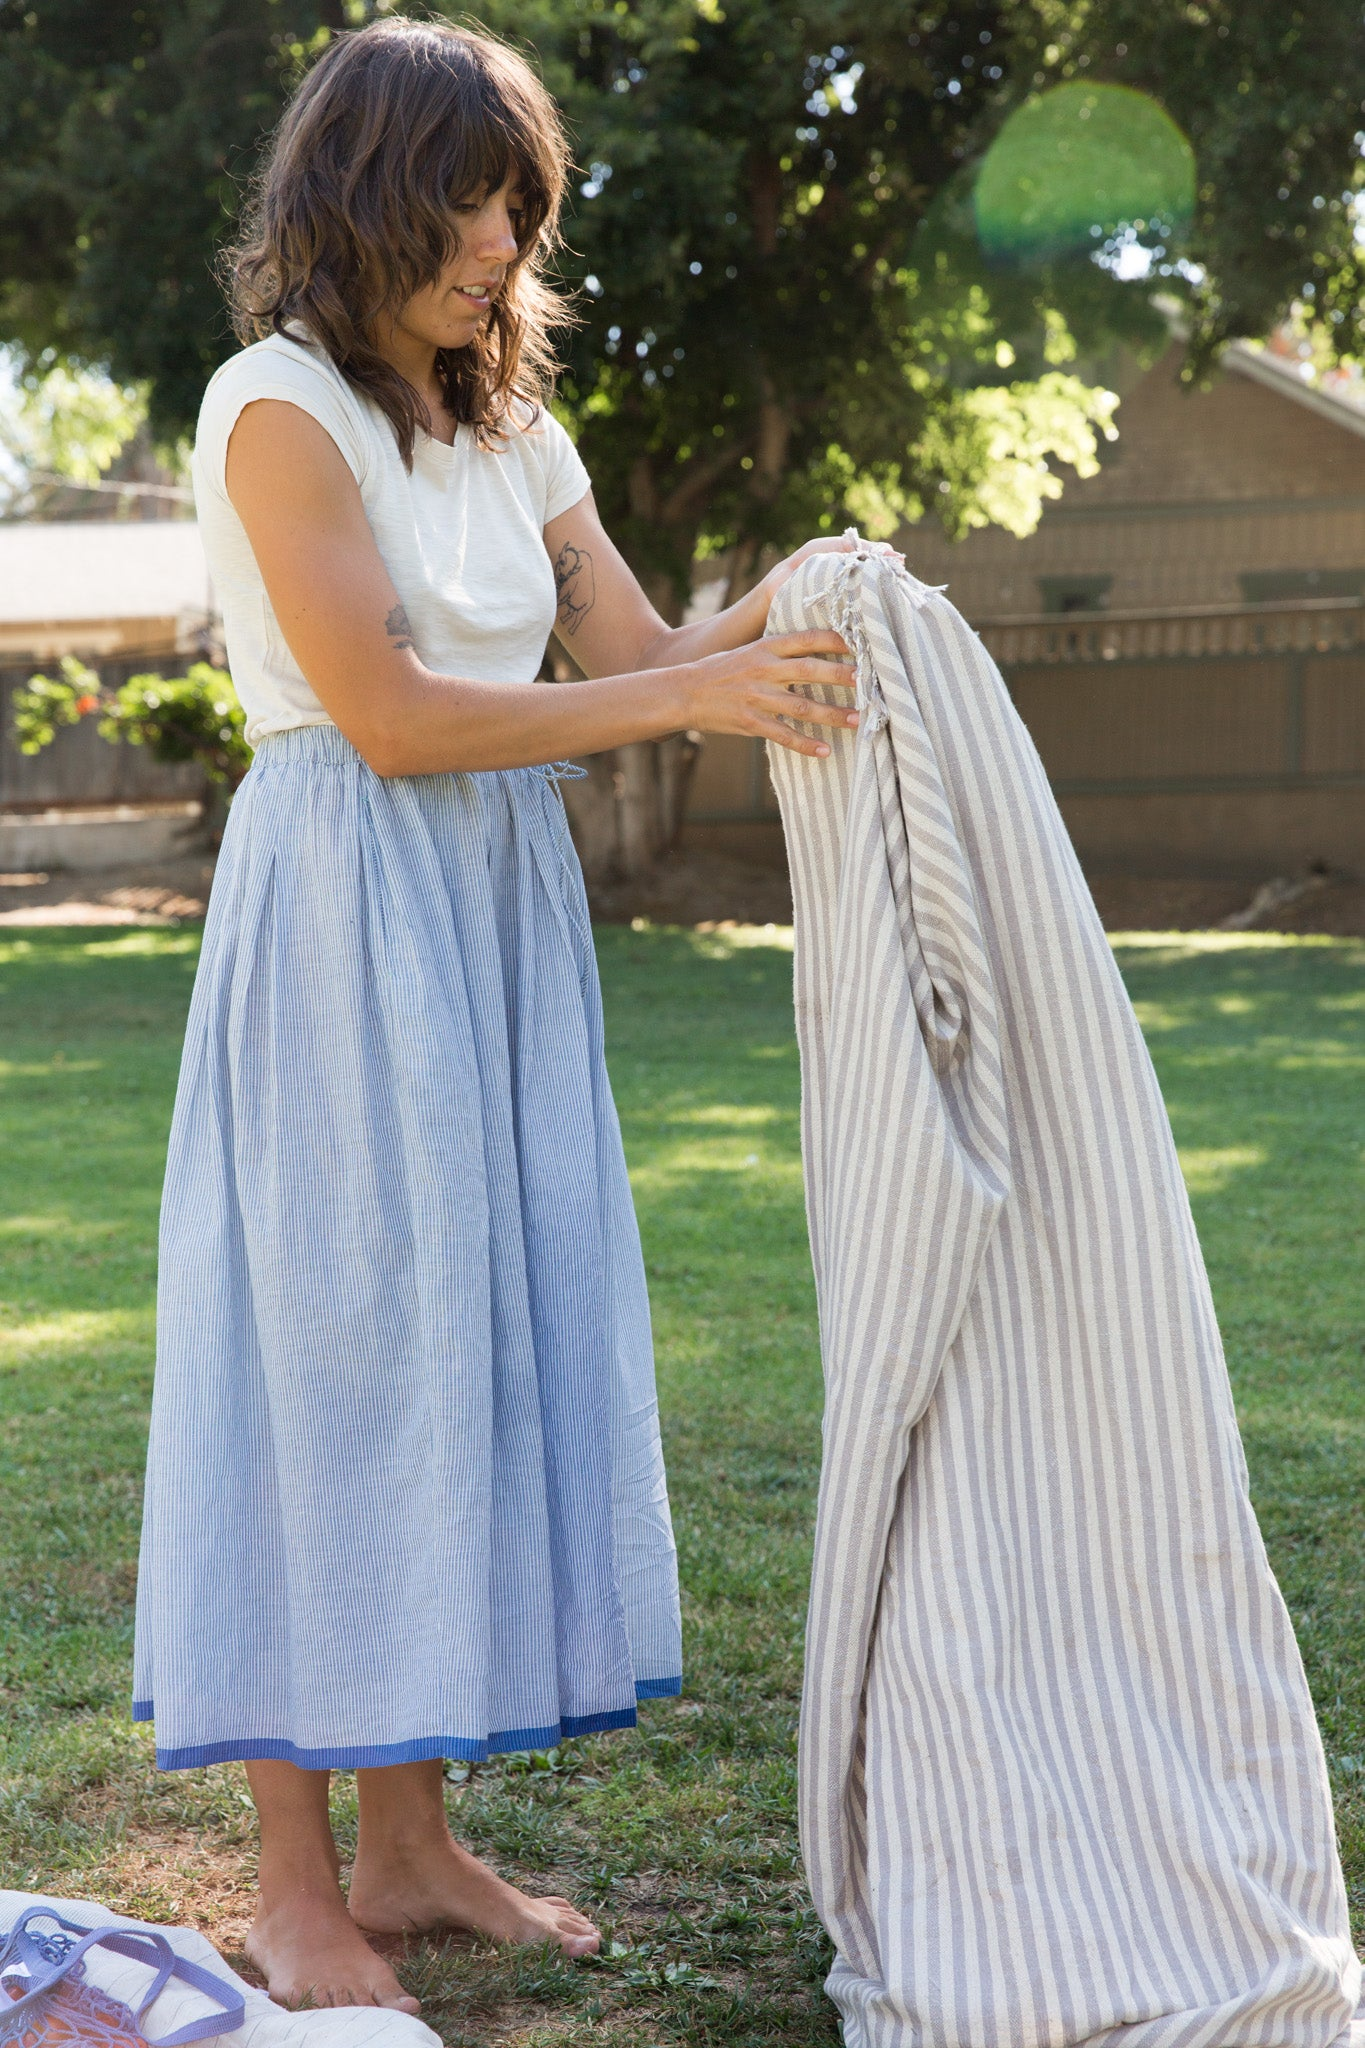 picnic blanket in injiri skirt and it is well tee